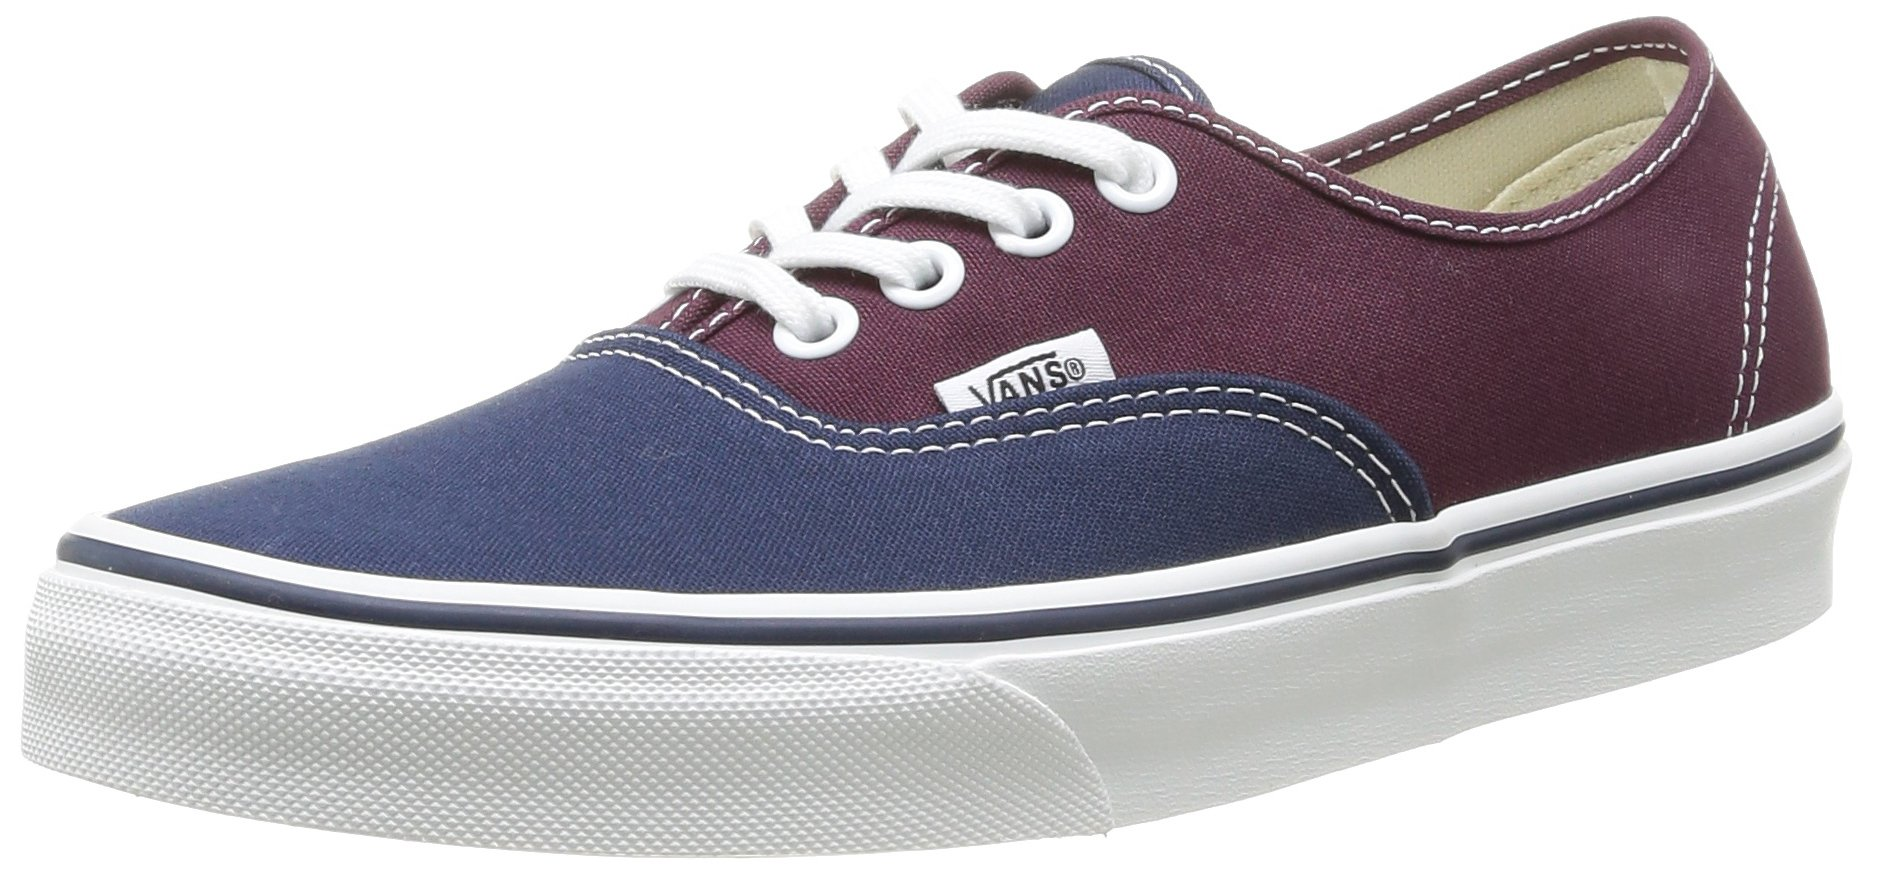 Vans Authentic Mens Skateboarding Shoes Dress Blue 13 D(M) US Dress Blue